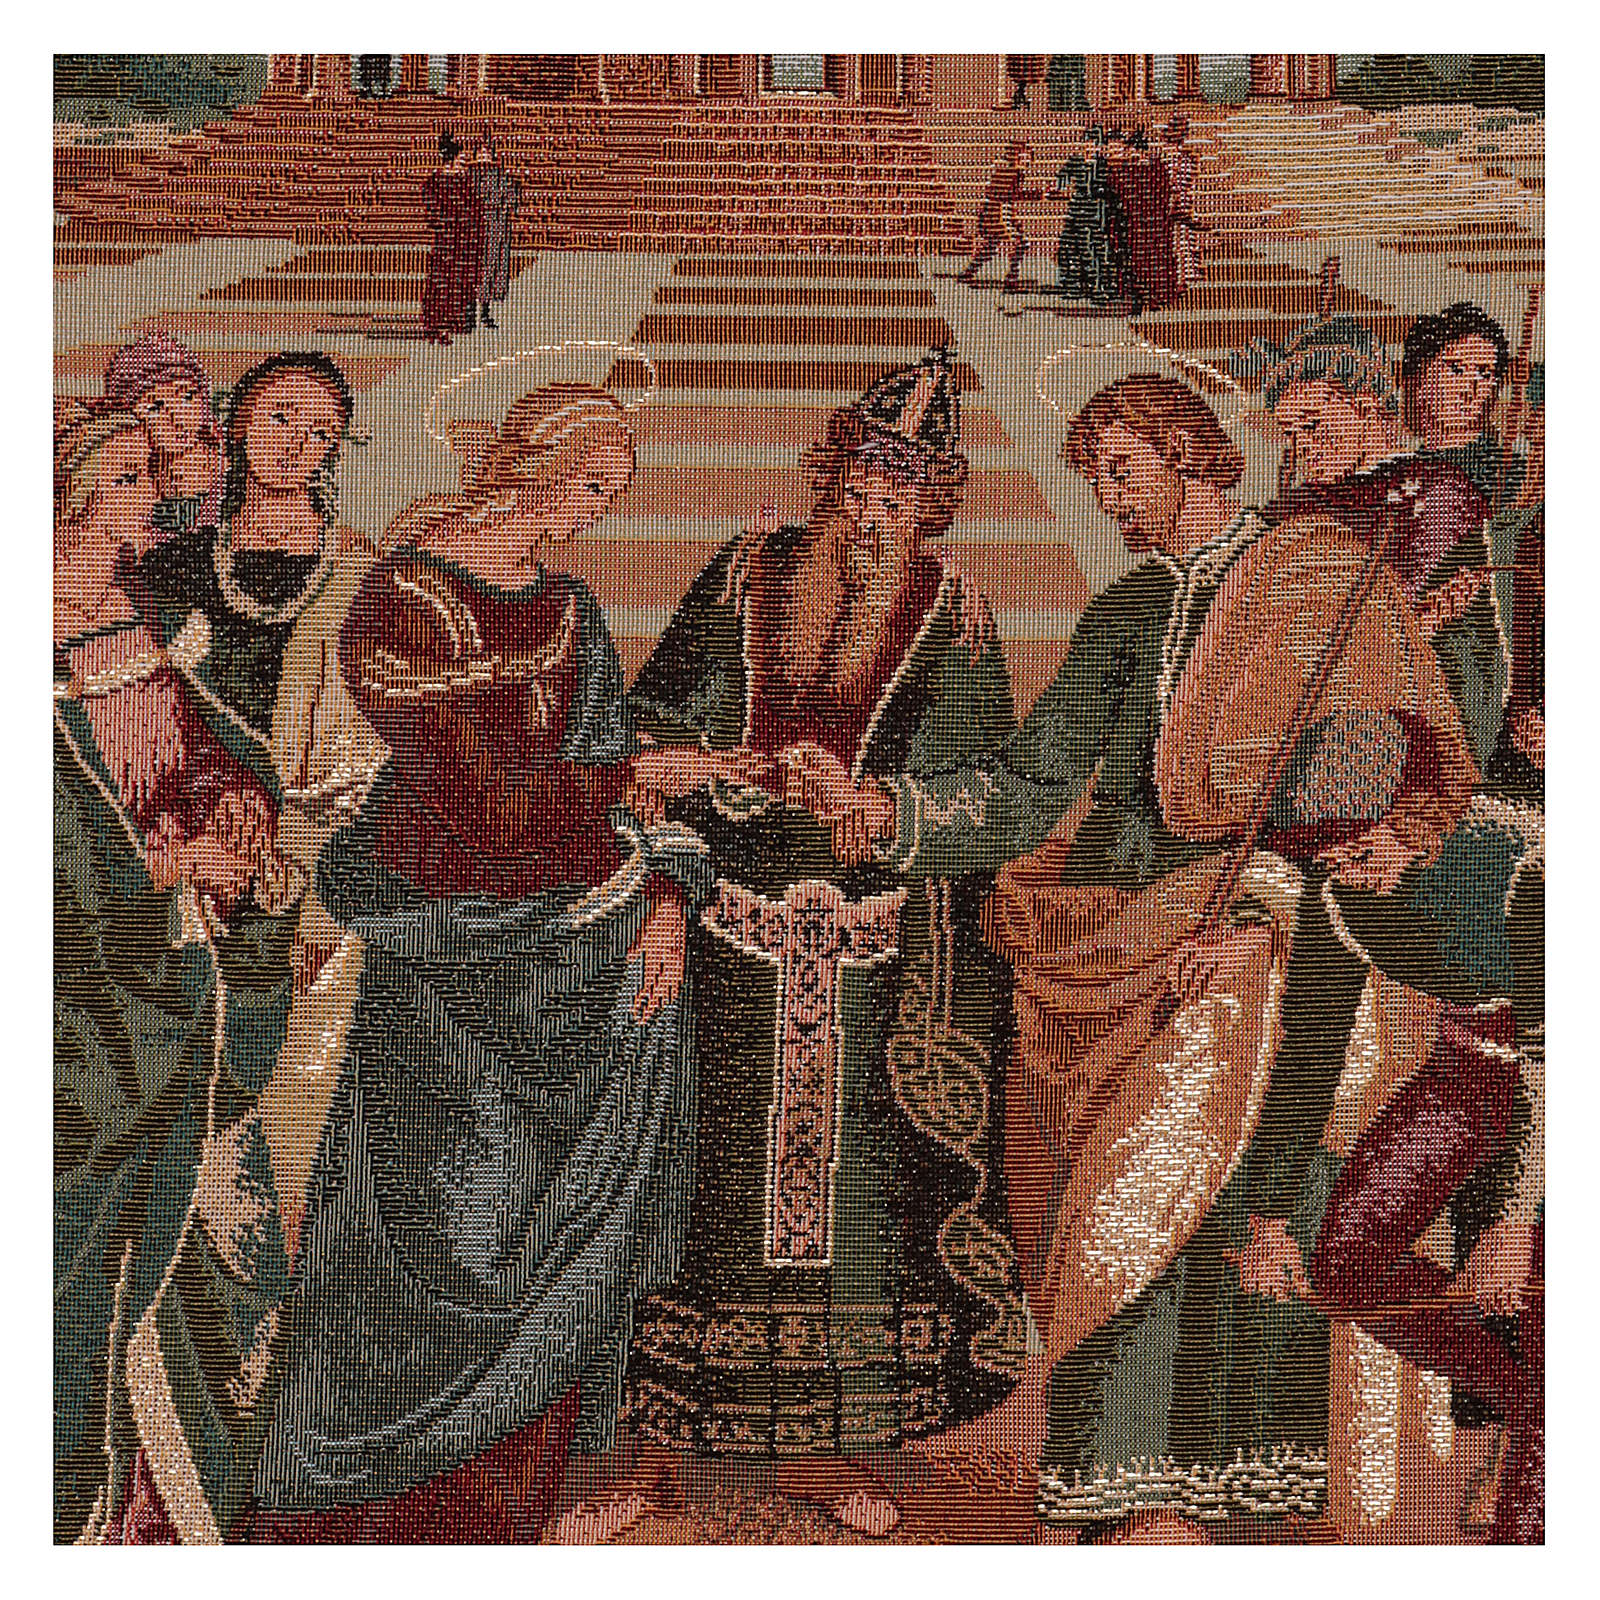 Marriage Of The Virgin Mary And St Joseph Tapestry 23 4x15